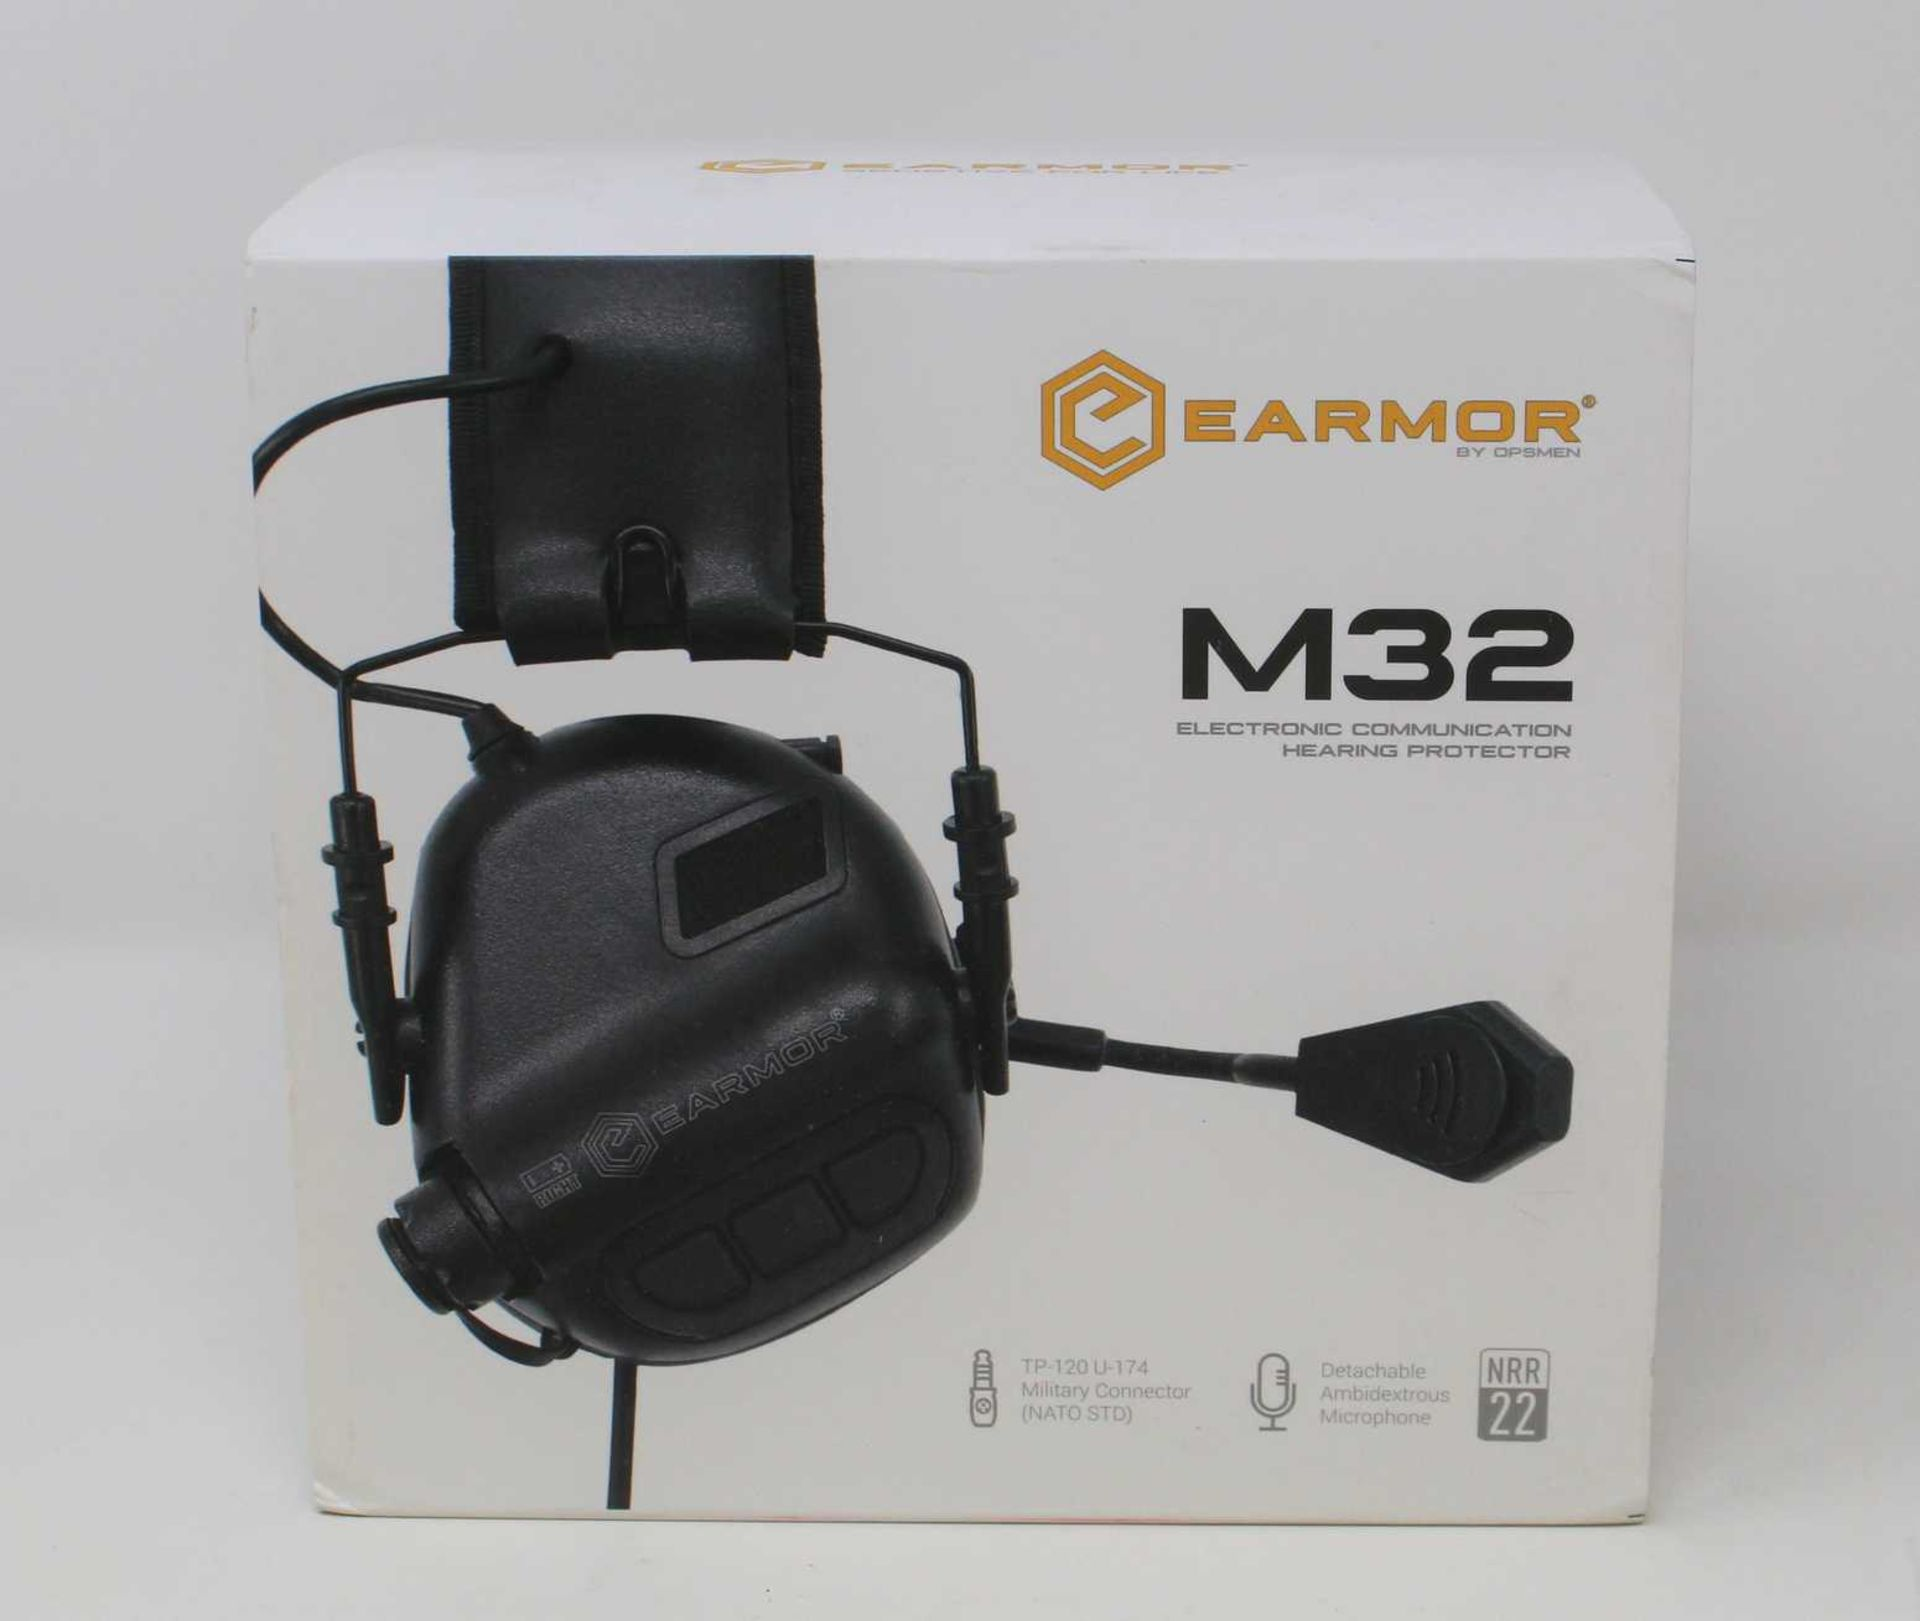 A boxed as new Earmor M32 MOD3 Communications Headset with Hearing Protection in Black (Model: M32-